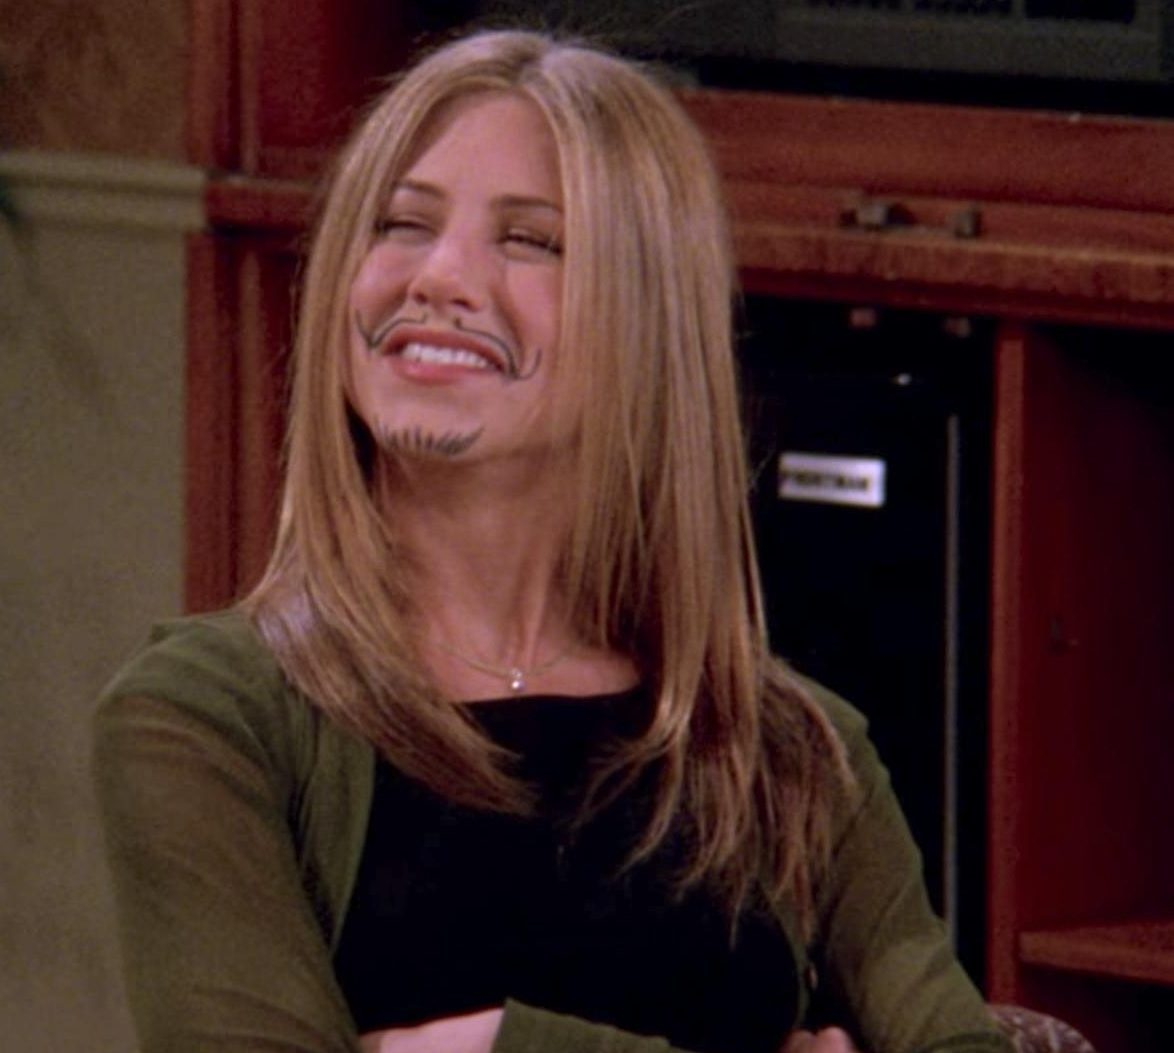 friends 5 e1621932564440 20 Reasons Why Ross In Friends Is Actually A Terrible Human Being